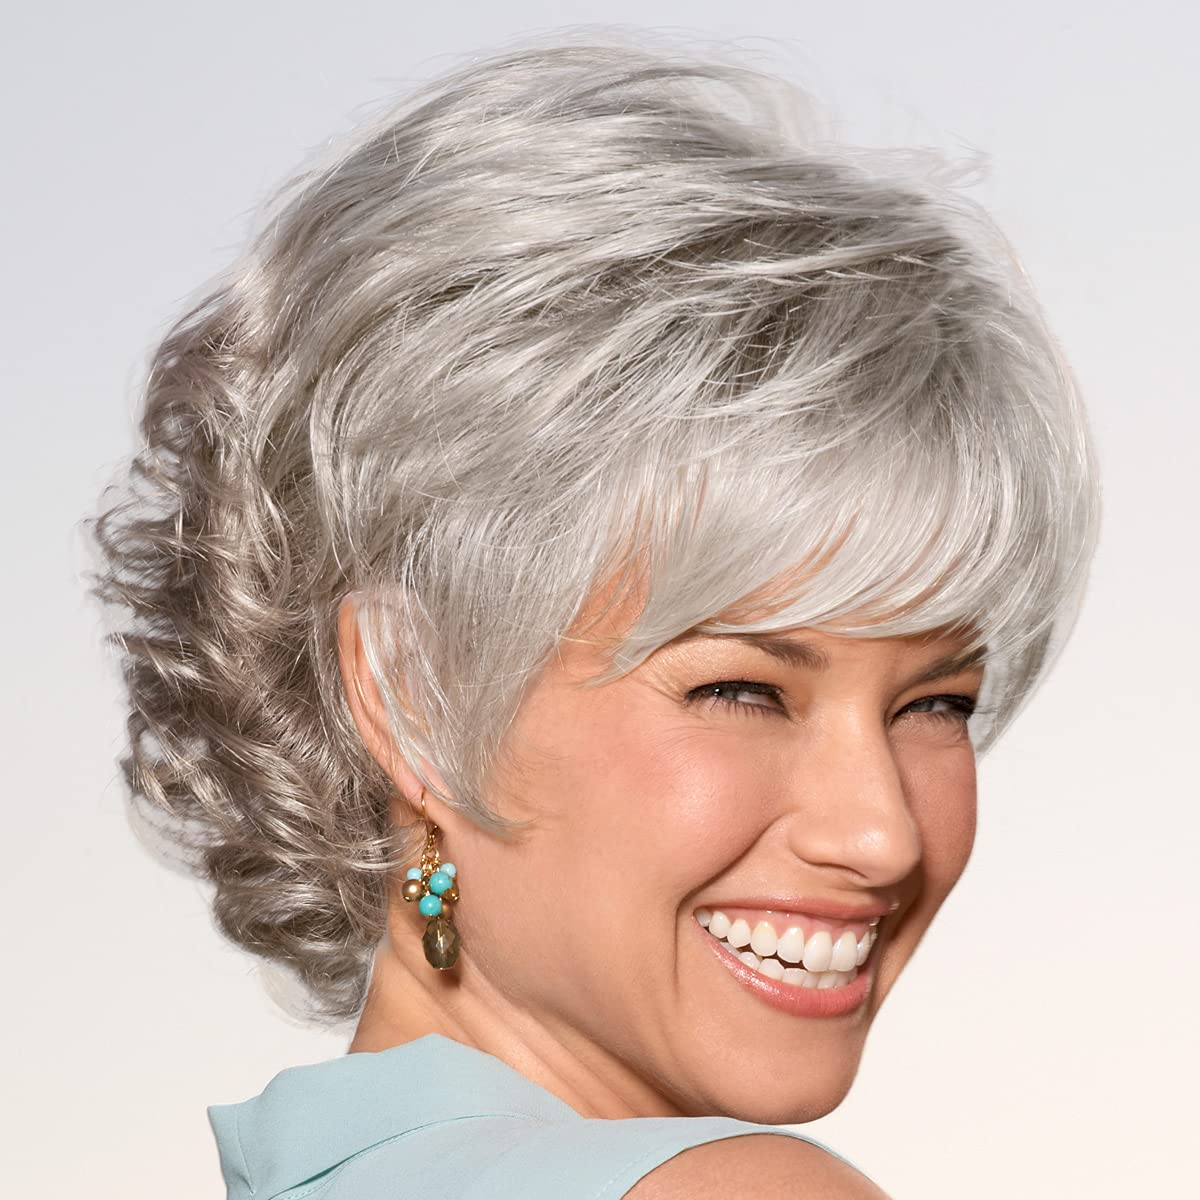 Alex Popular product WhisperLite Wig by Paula Young with Time sale - Side- Sassy Short